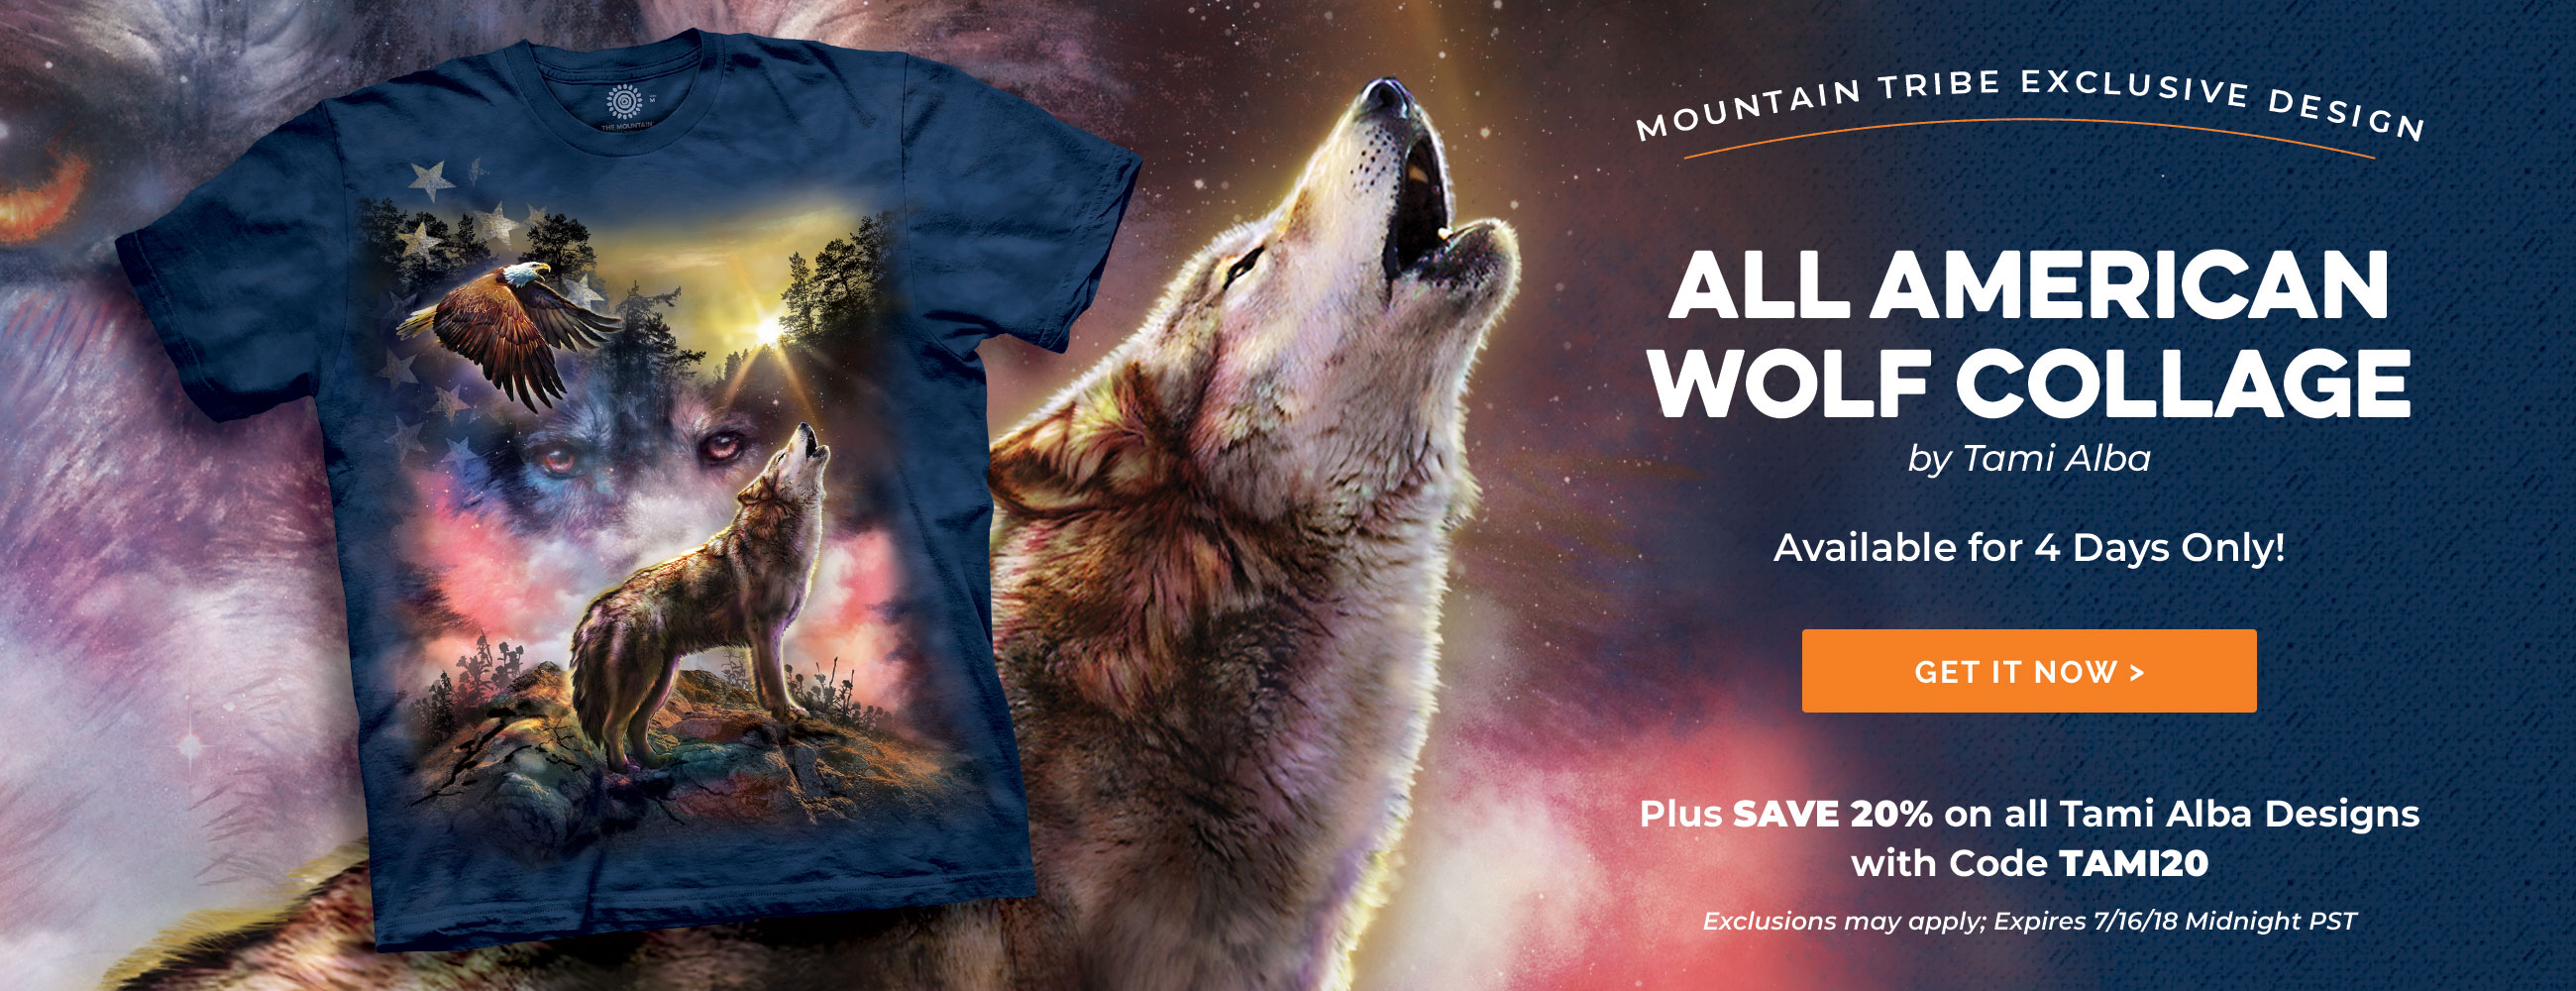 Tami Alba - All American Wolf Collage T-Shirt